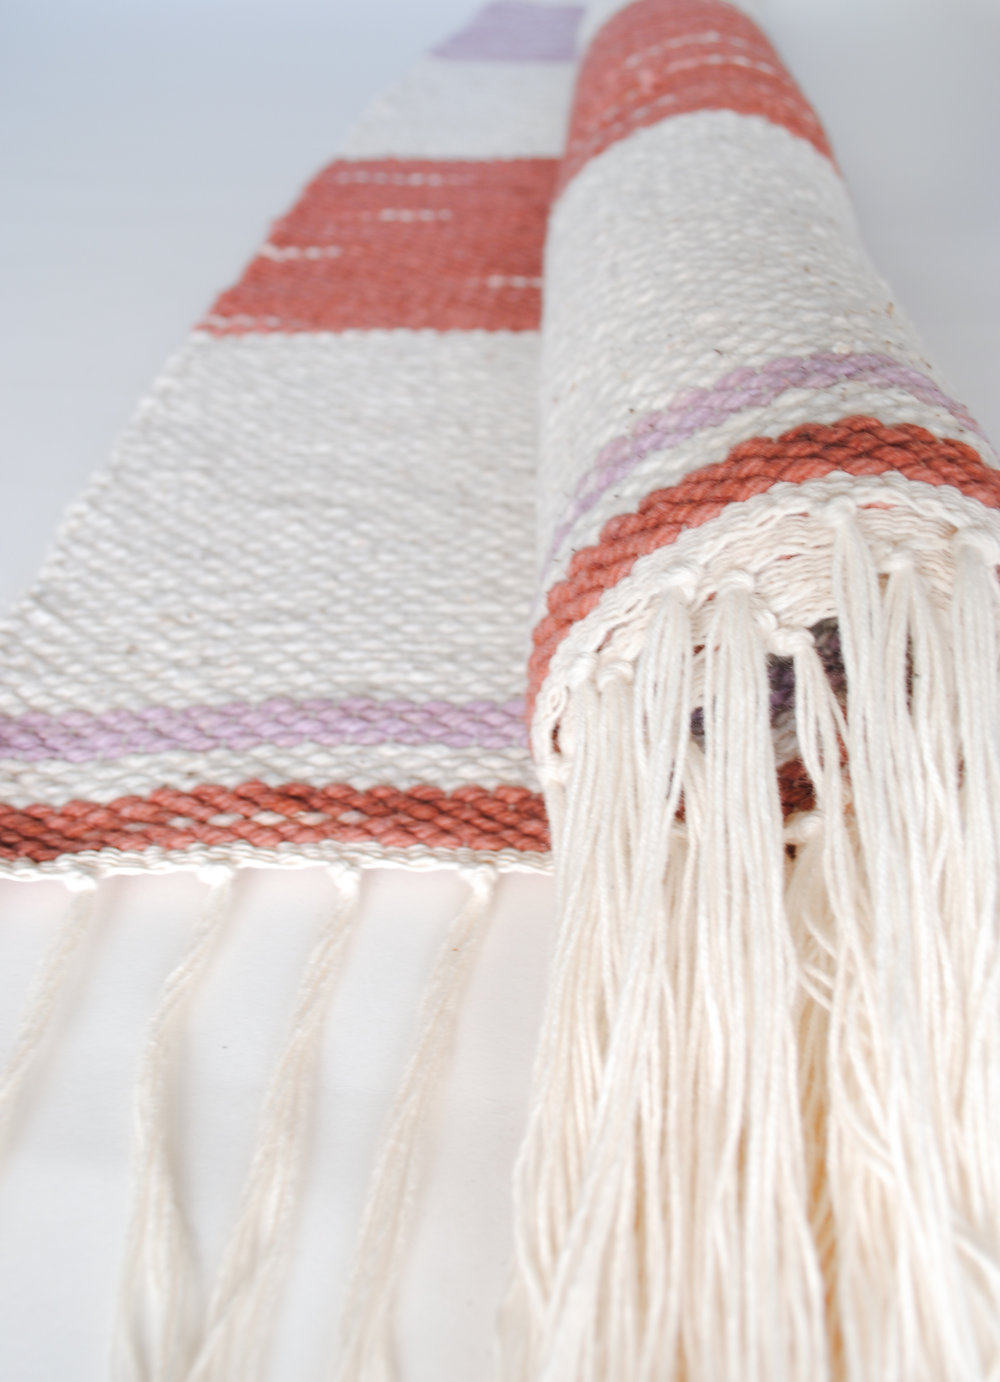 WEGATHER_Handwoven_UnionRug_Russet_Dusk_Cream_Roll.JPG